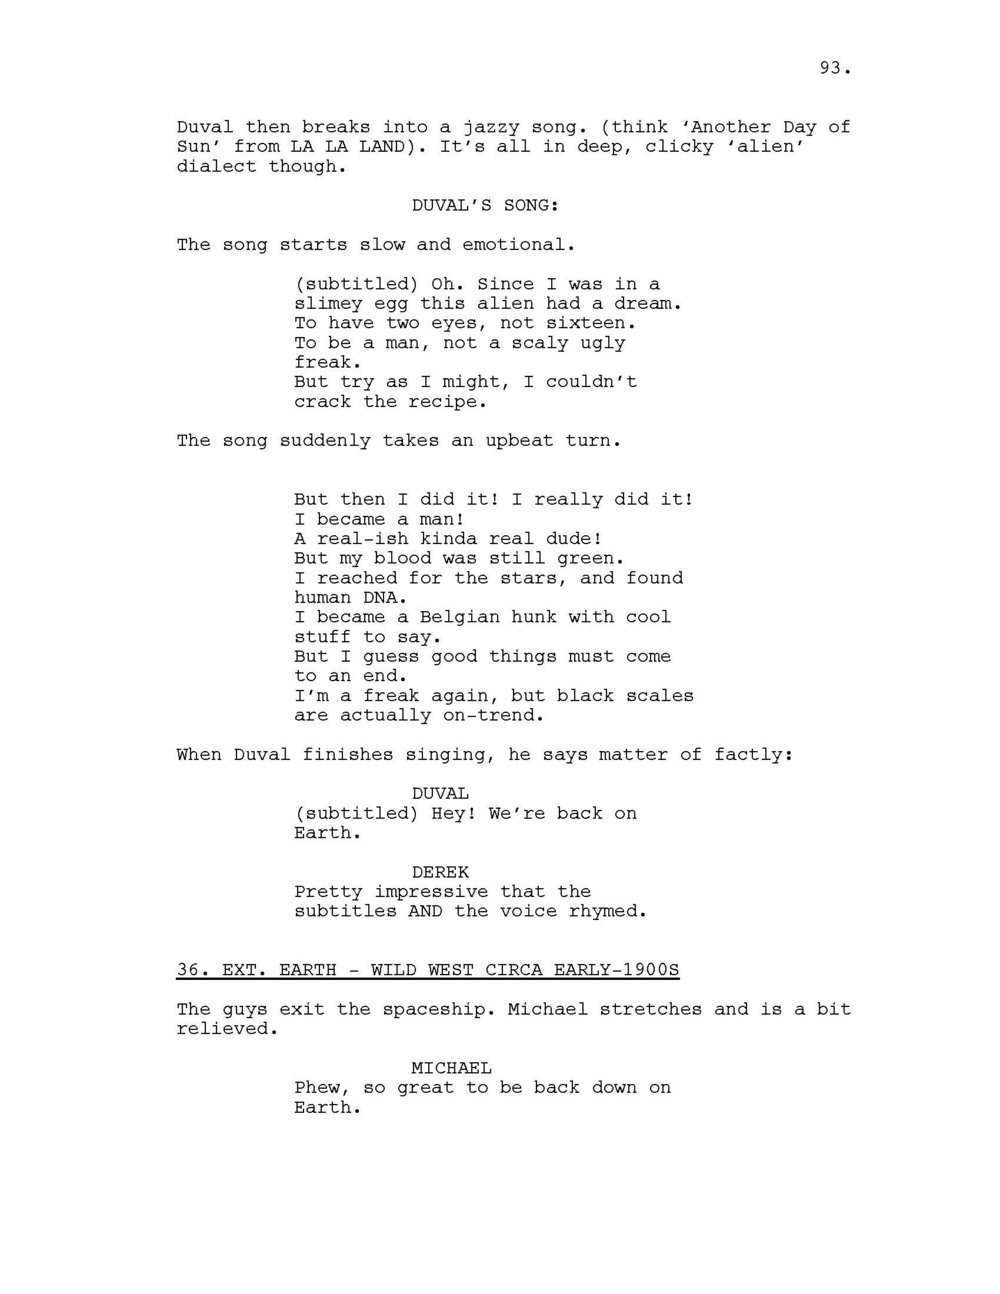 INVISIBLE WORLD SCRIPT_Page_094.jpg